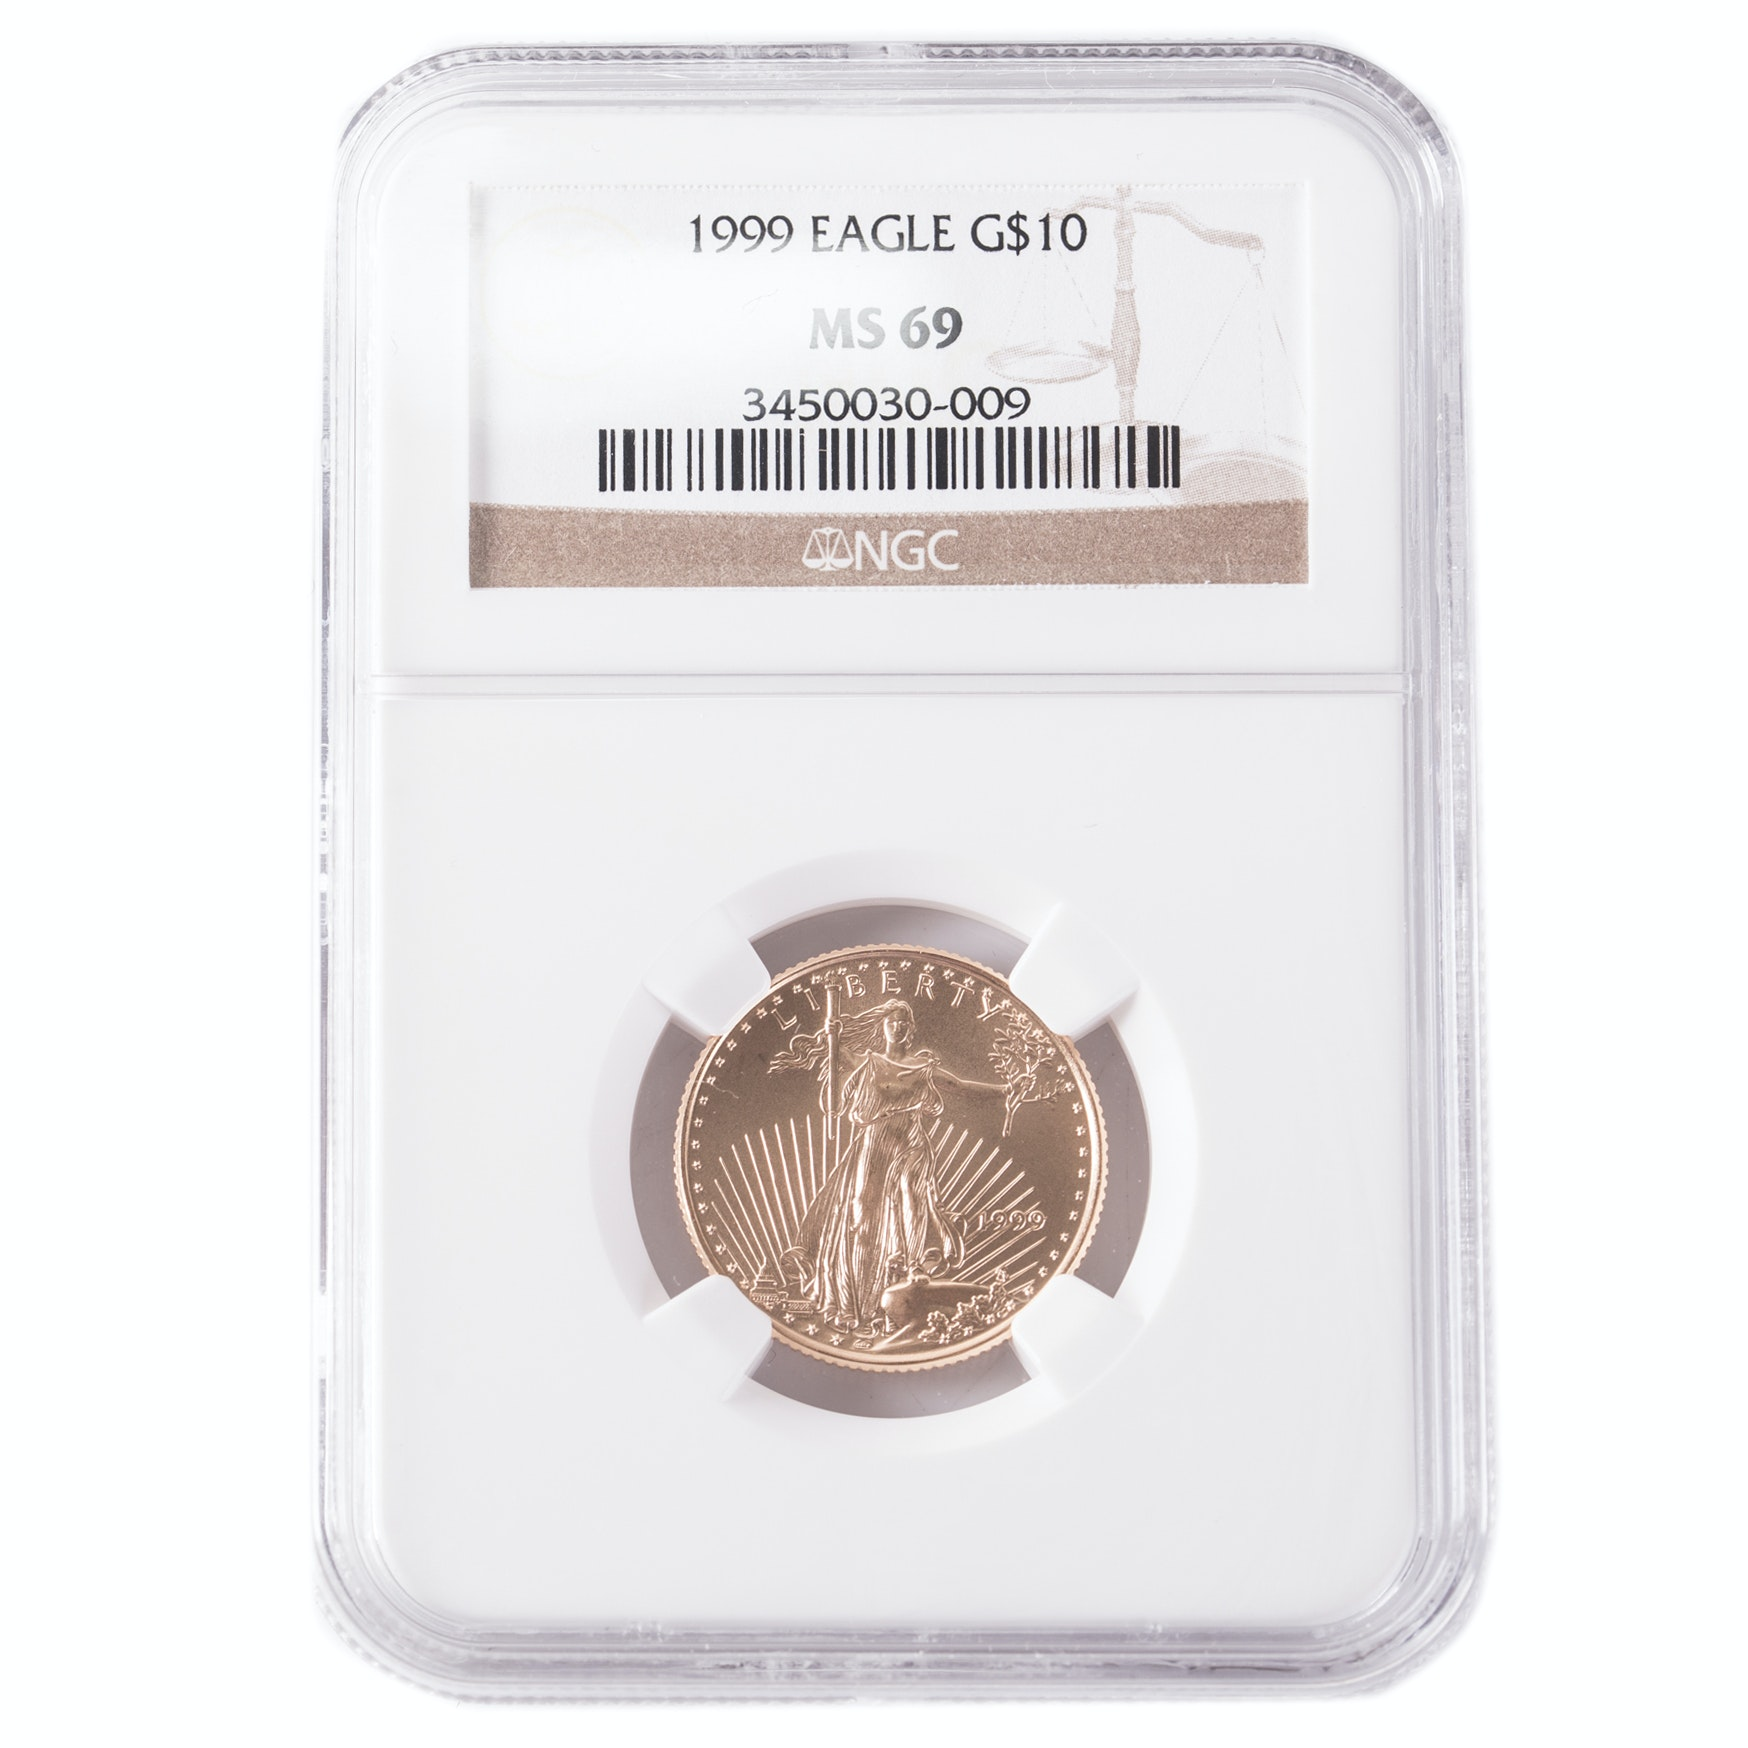 NGC Graded MS69 1999 American Eagle $10 Gold Bullion Coin